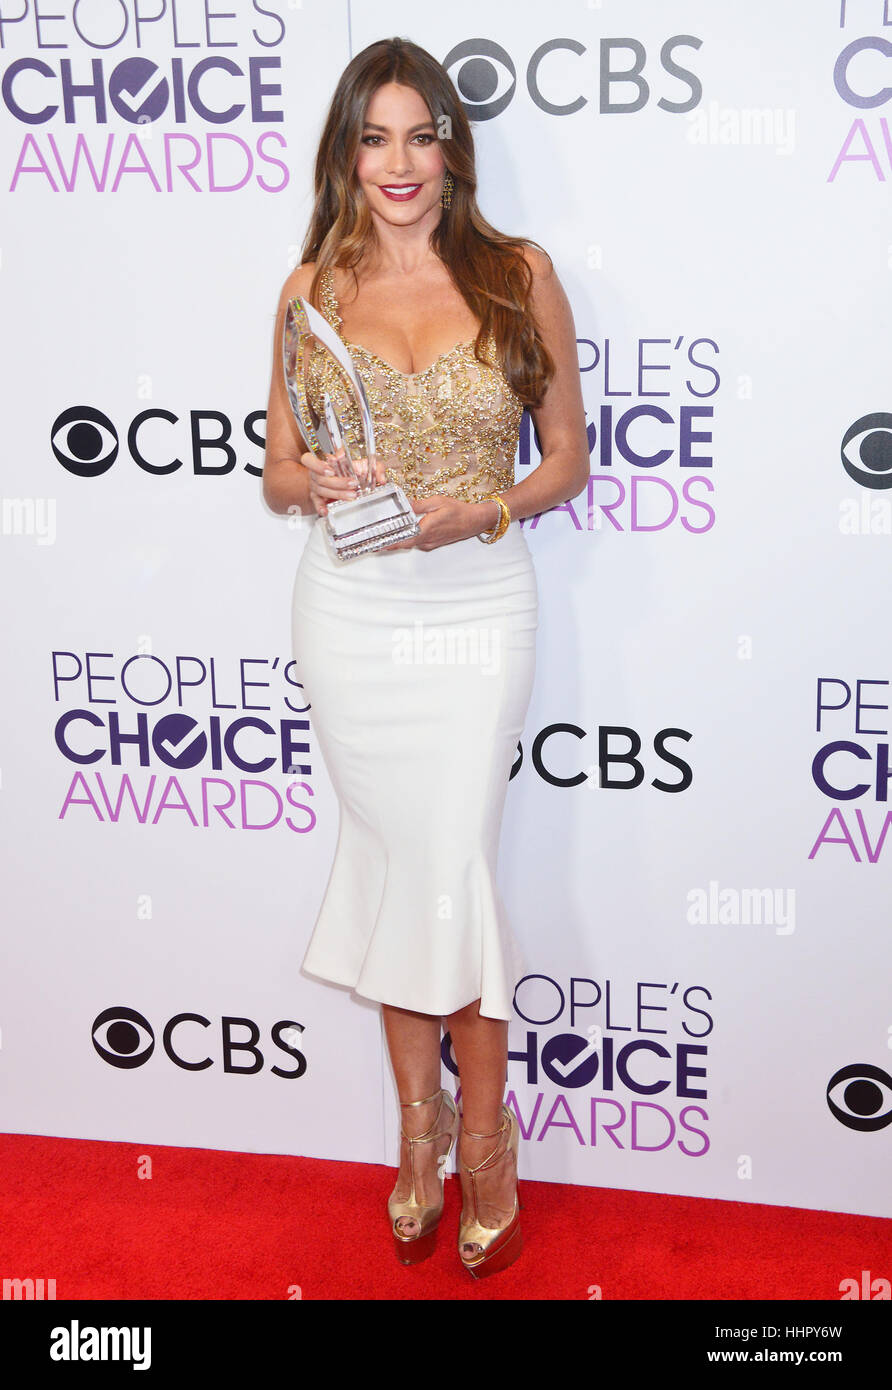 Sofia Vergara 213 arriving at the People's Choice Awards 2017 at the Microsoft Theatre in Los Angeles. January 18, Stock Foto